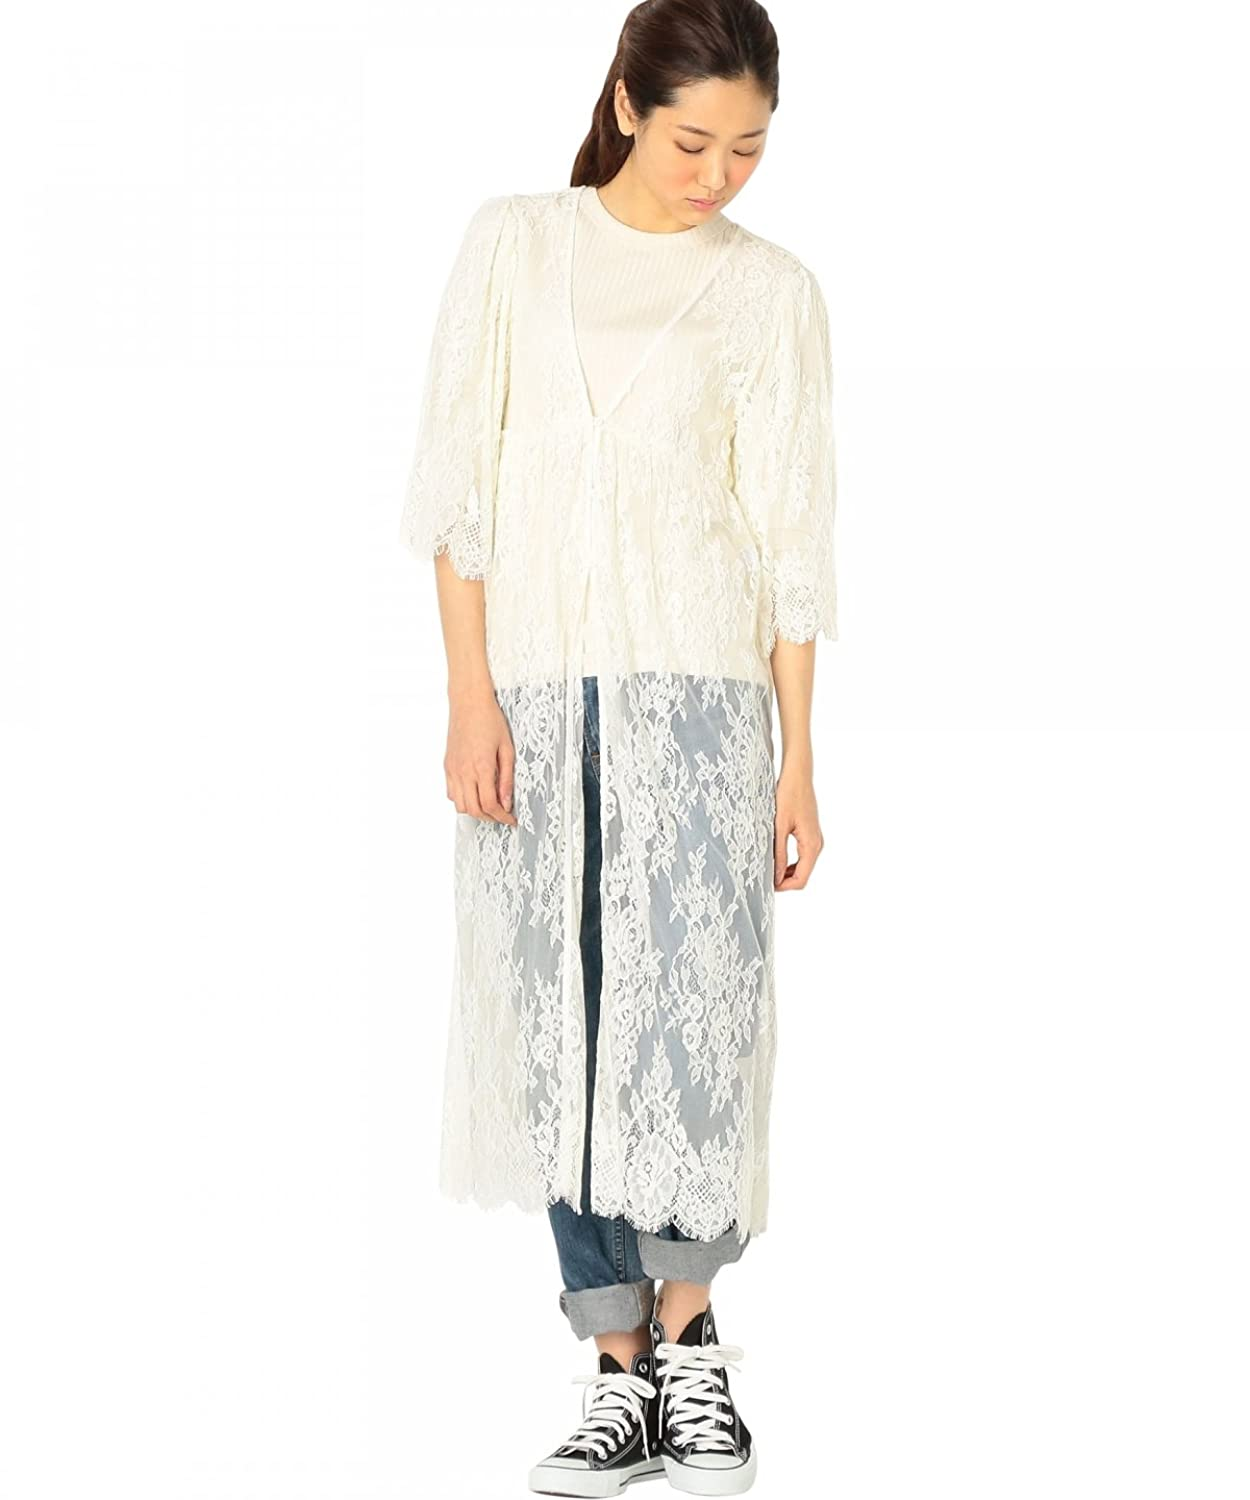 (アナザーエディション) Another Edition AEMFC LACE LONG OP 56261992783 03 Off White FREE : 服&ファッション小物通販 | Amazon.co.jp